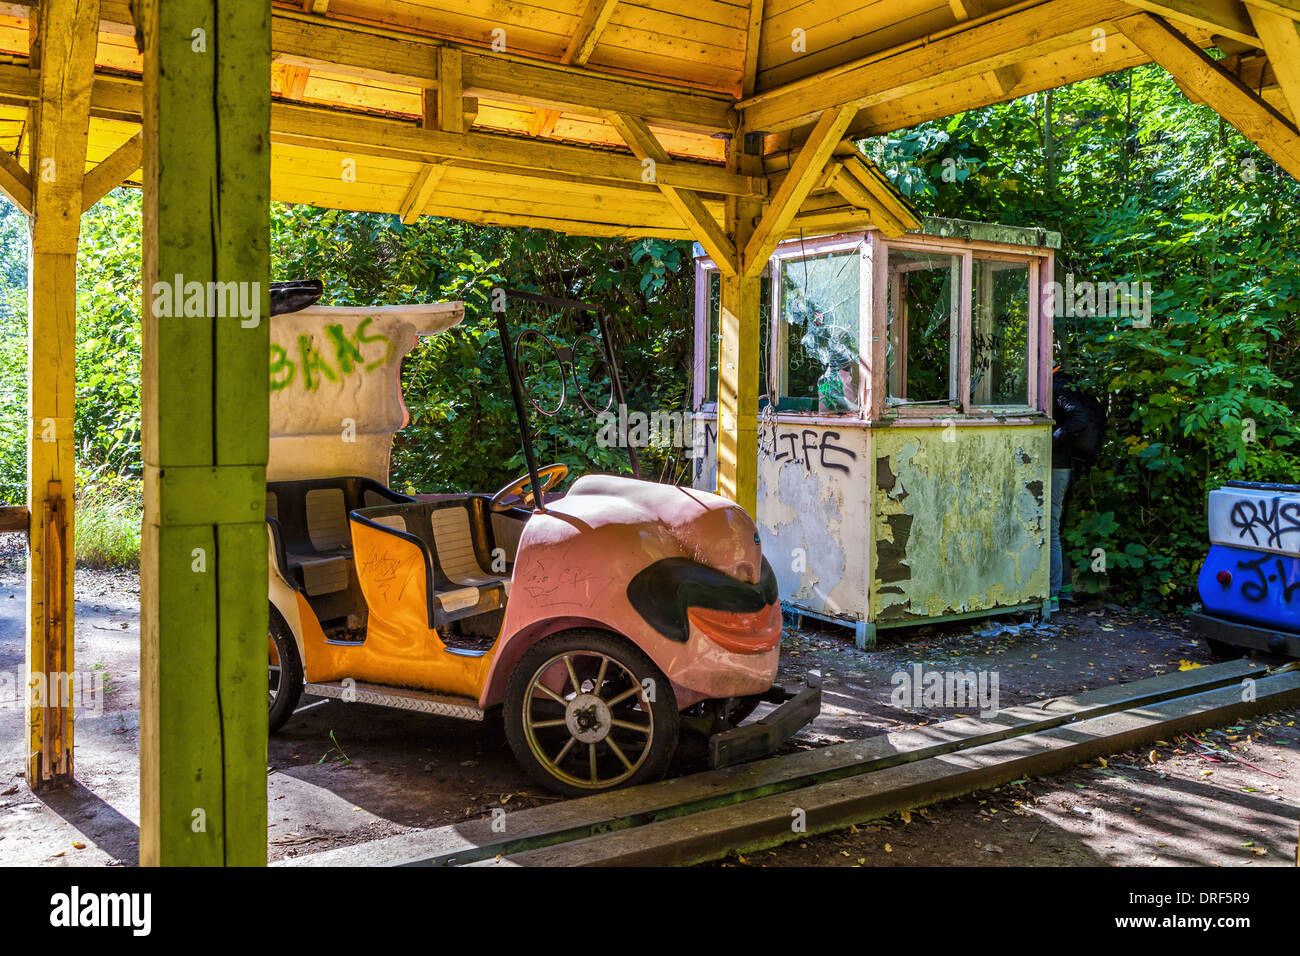 Ticket office and old car of funride at the abandoned, derelict ...